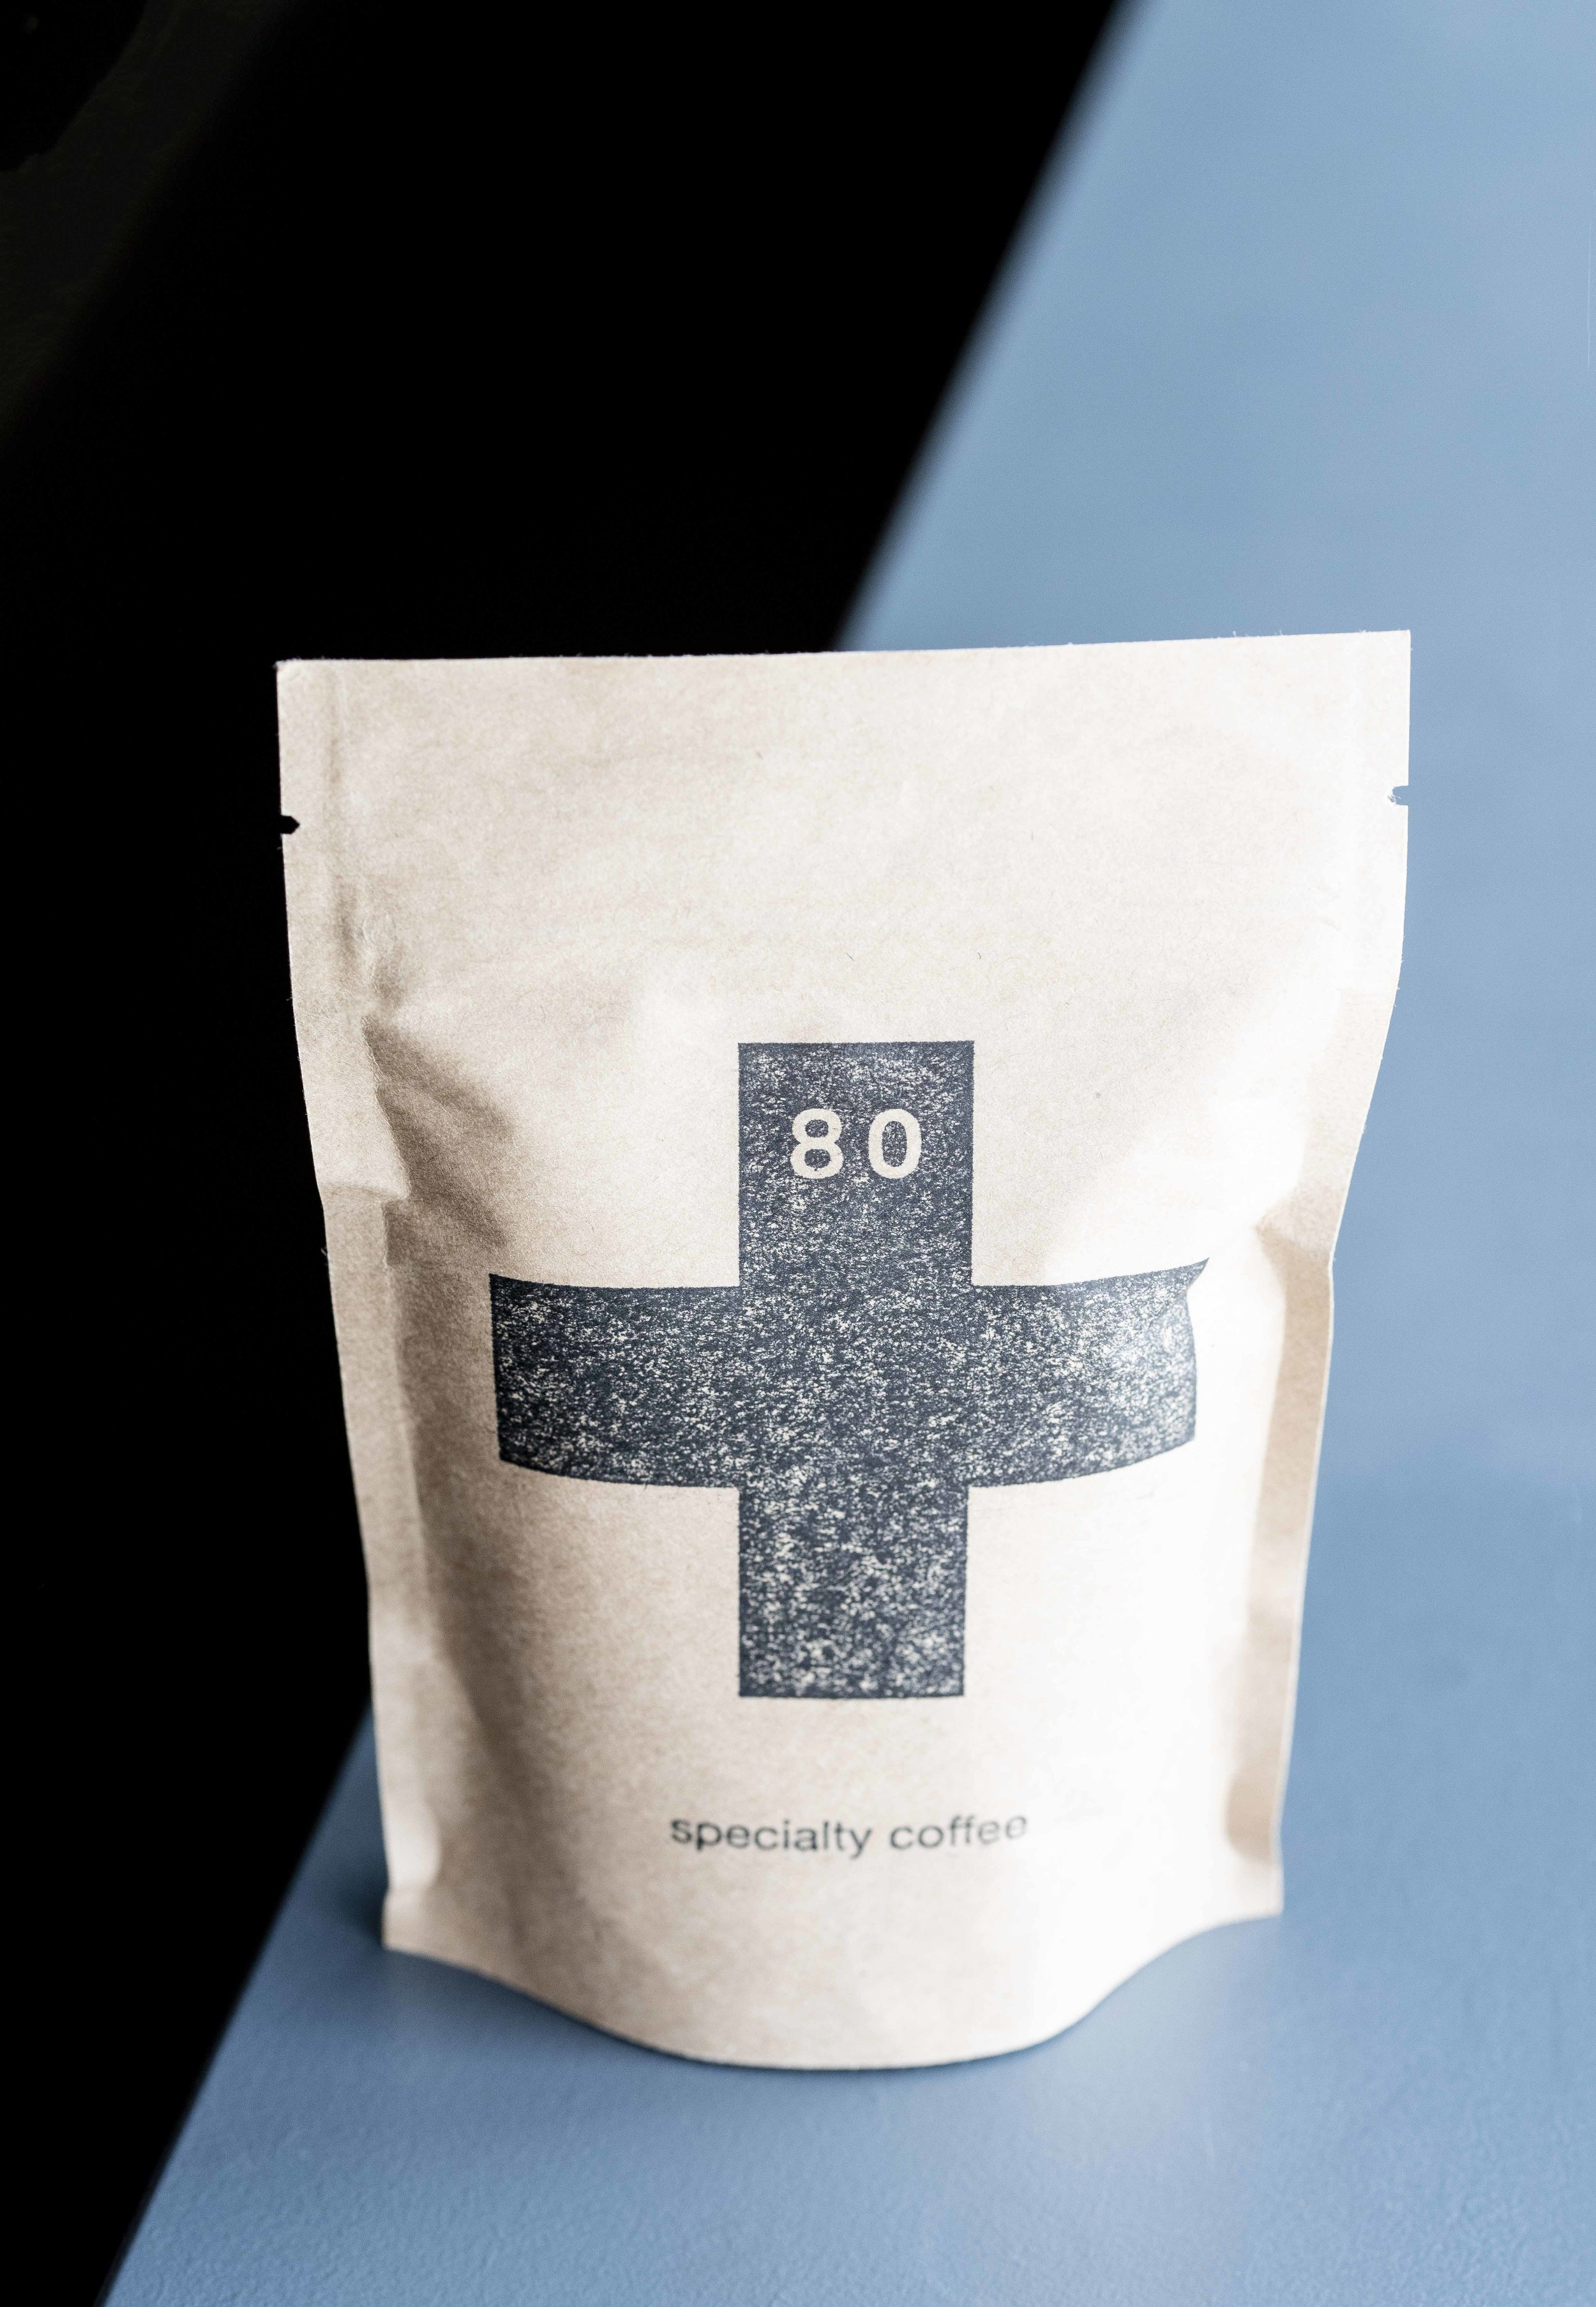 80plus specialty coffee. Photo © Barcelona Food Experience.